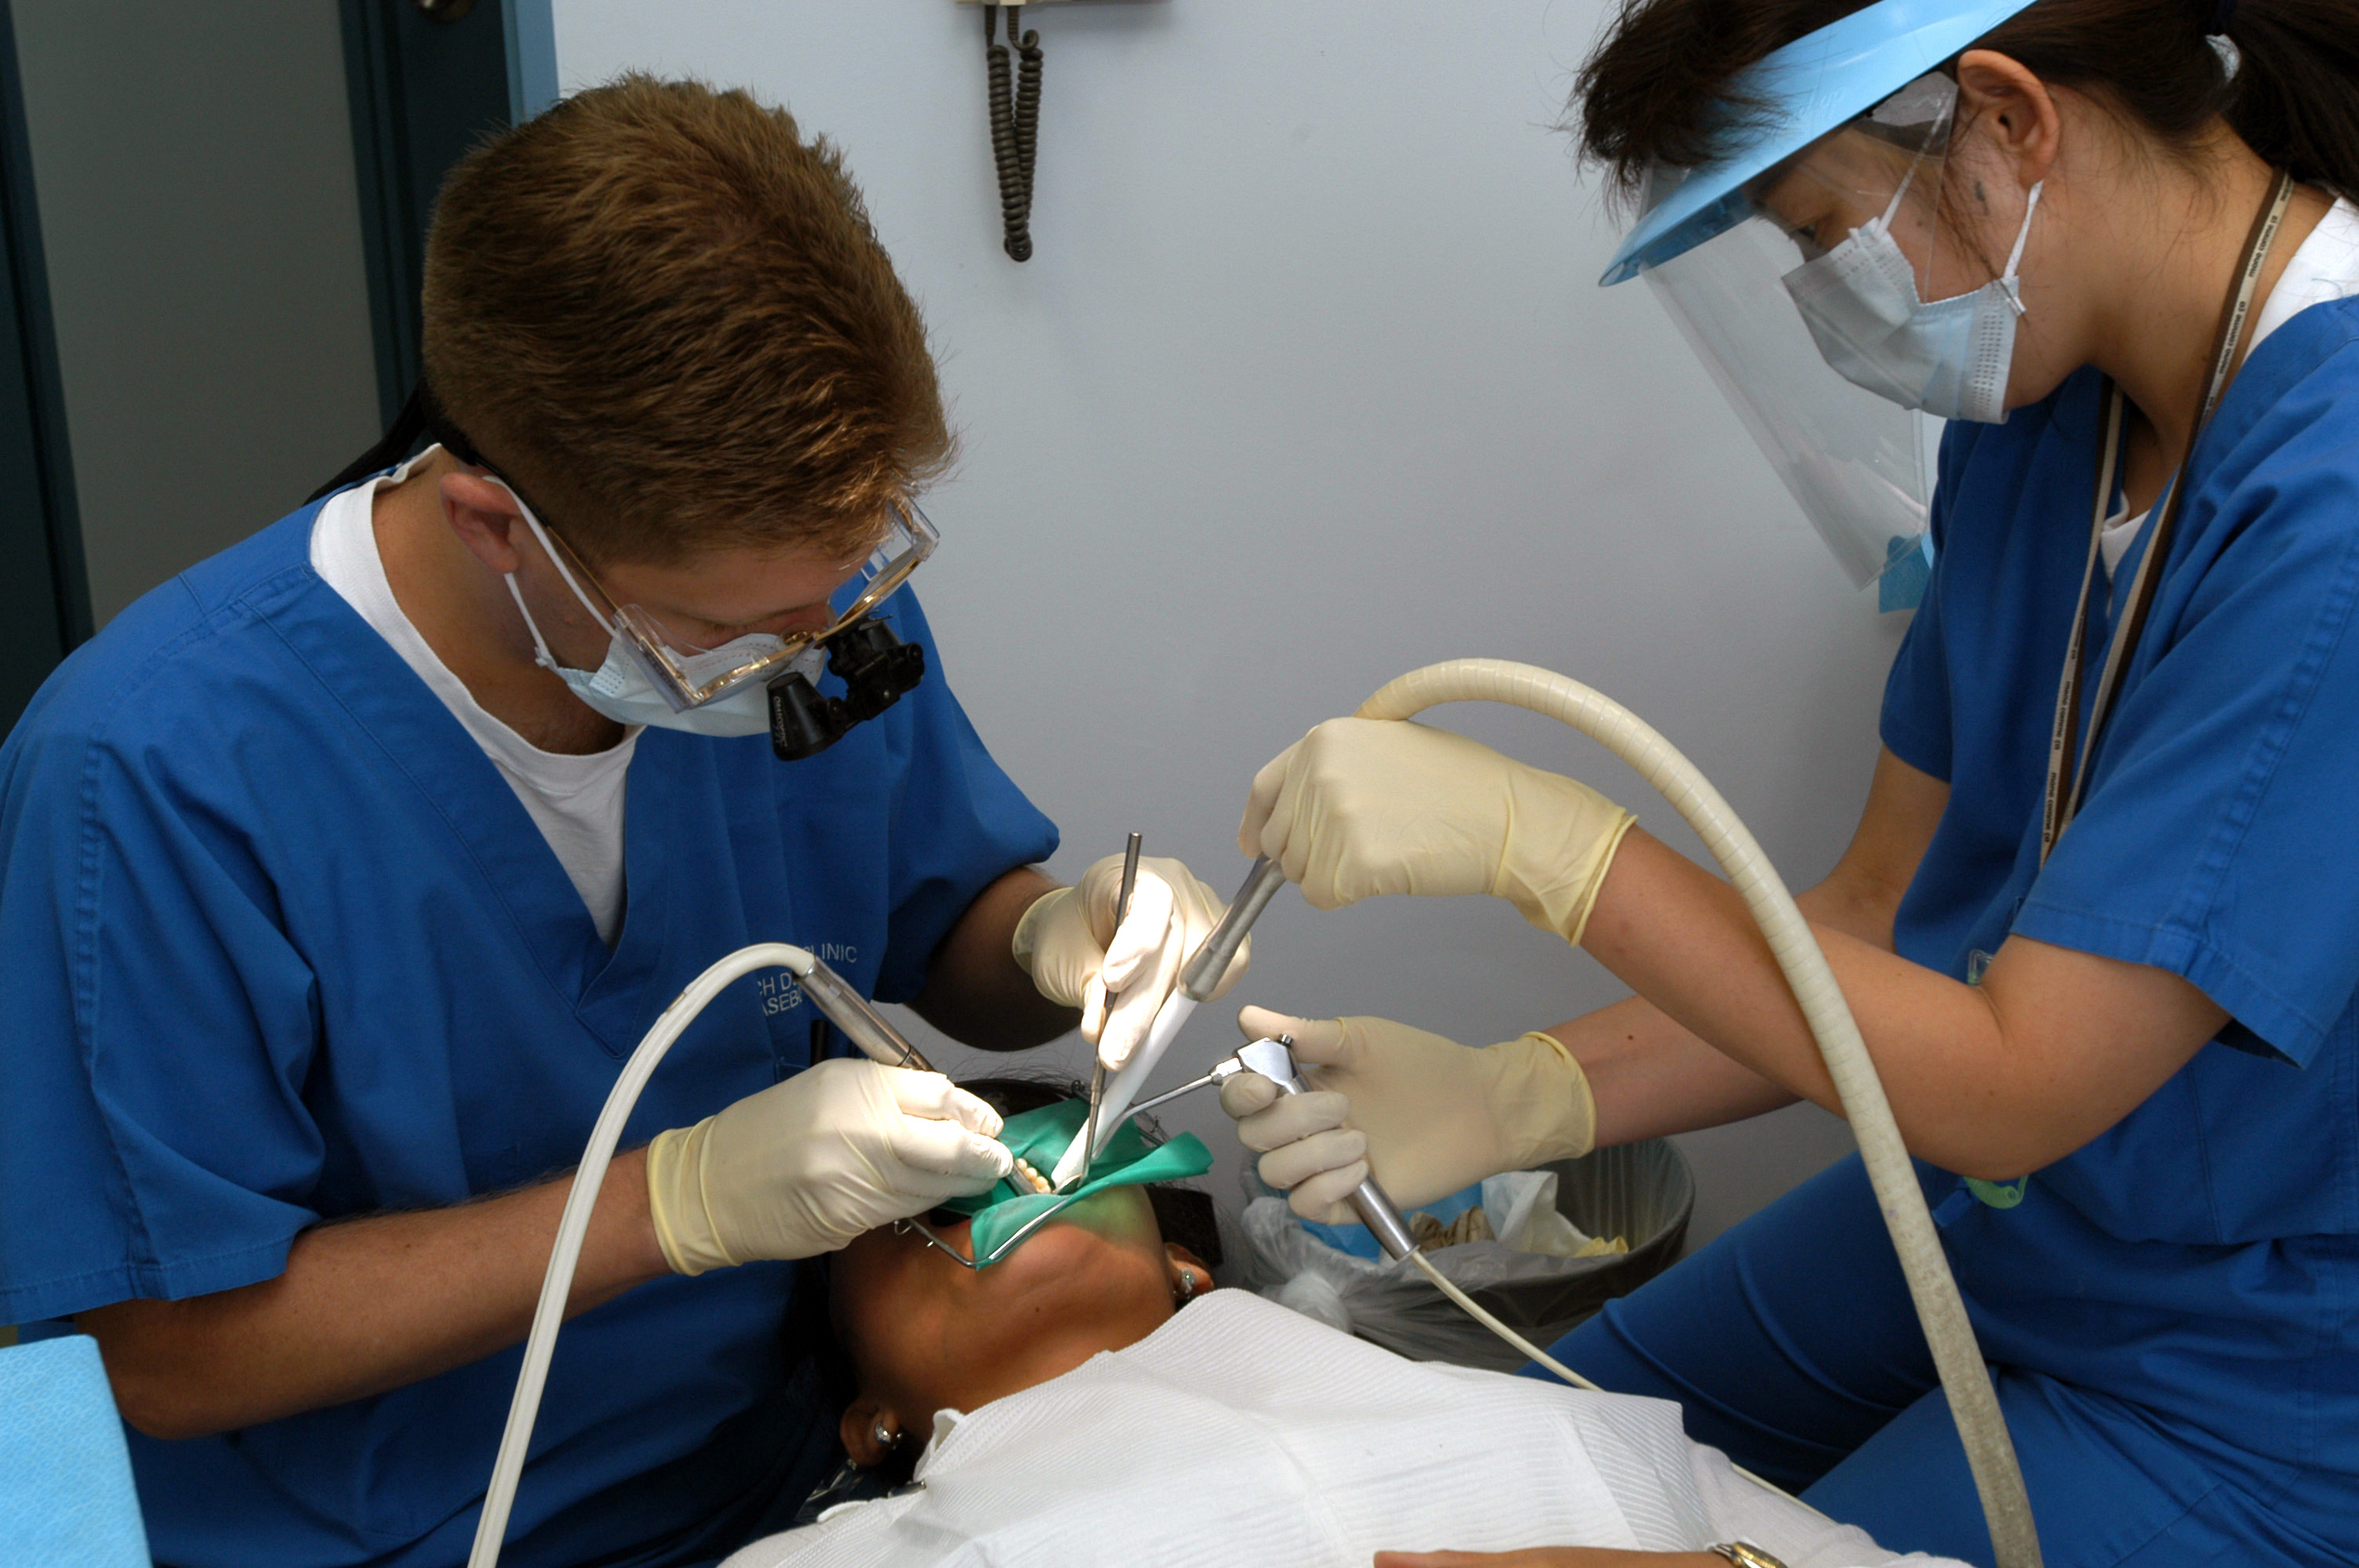 Dental Care: The Dental Clinic